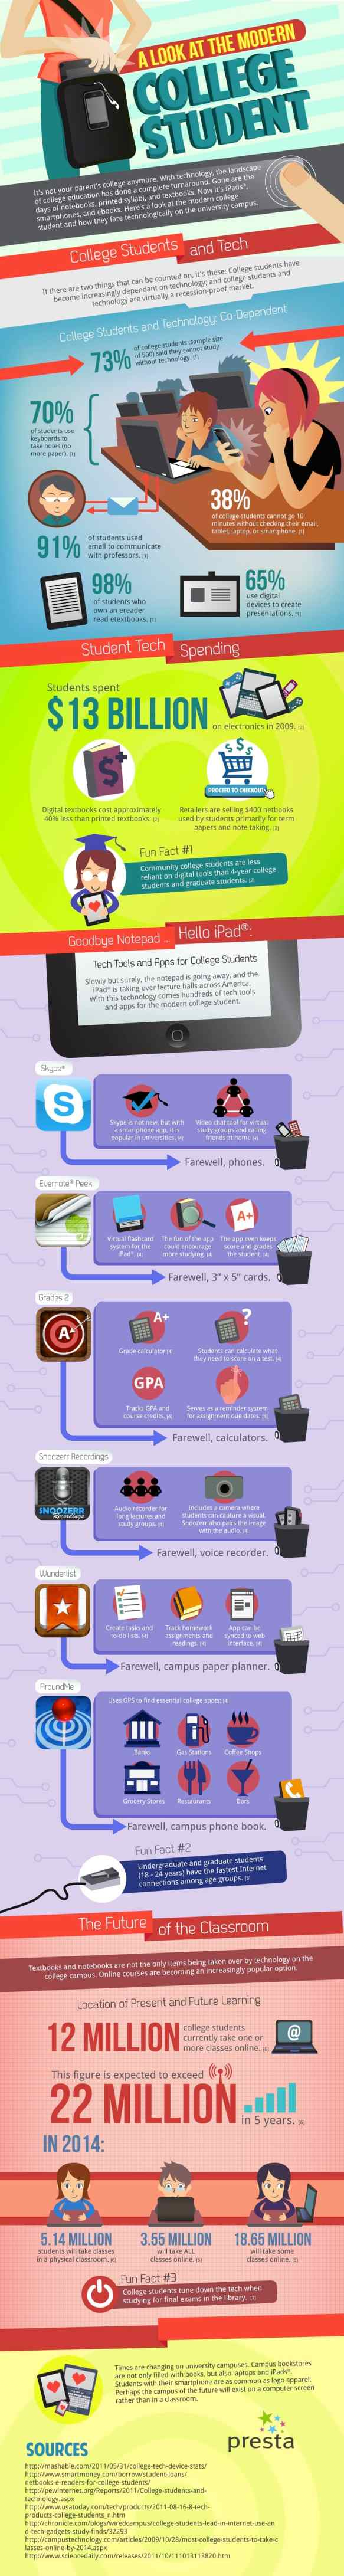 How Tech Is Changing College Life (INFOGRAPHIC) Infographic